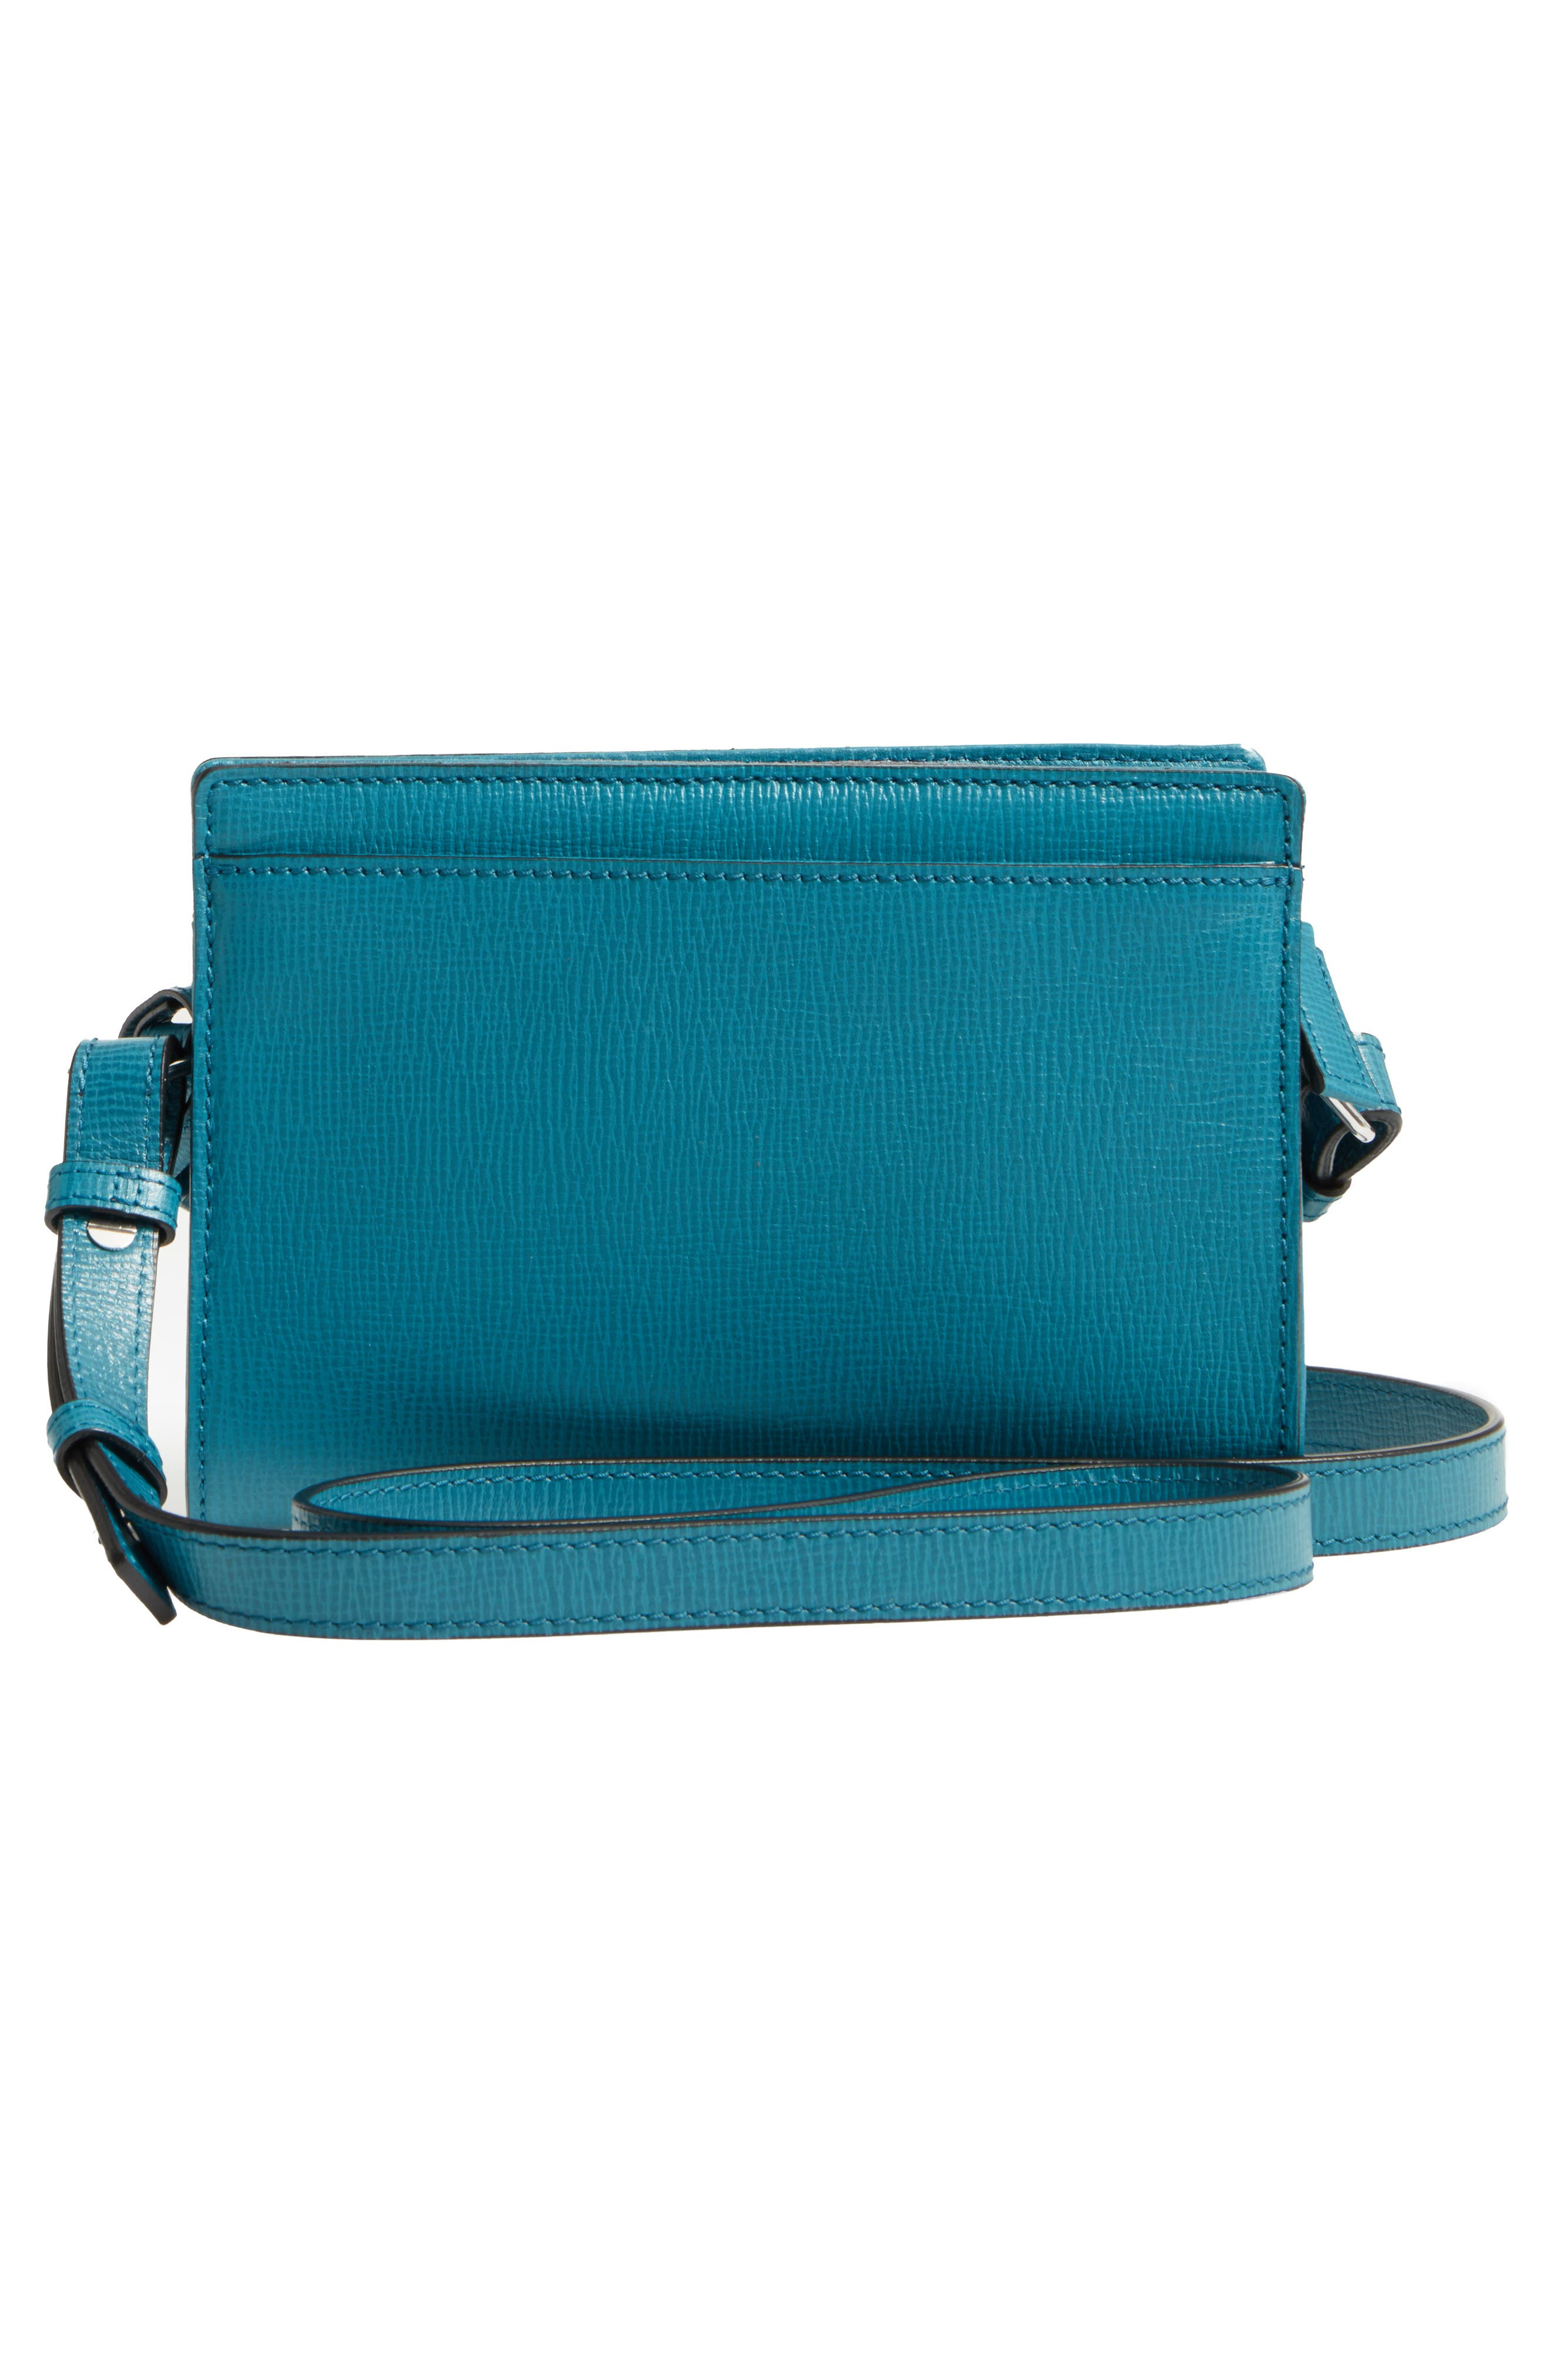 Alternate Image 2  - LODIS Los Angeles Business Chic Pheobe RFID-Protected Leather Crossbody Bag